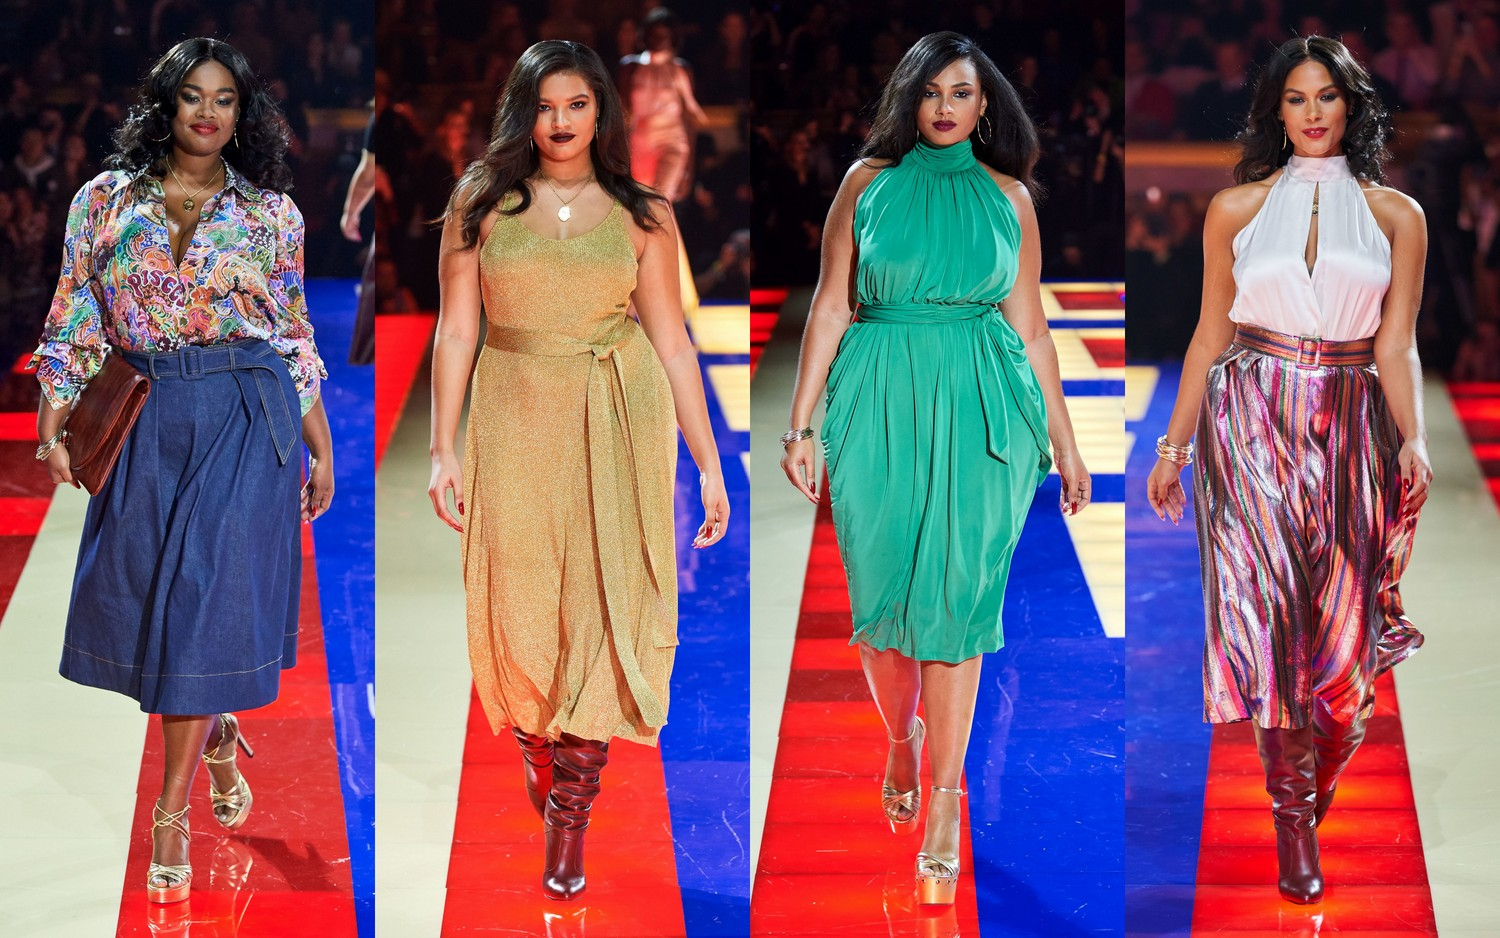 Zendaya x Tommy Hilfiger Collection in Plus Sizes aya x Tommy Hilfiger Collection in Plus Sizes